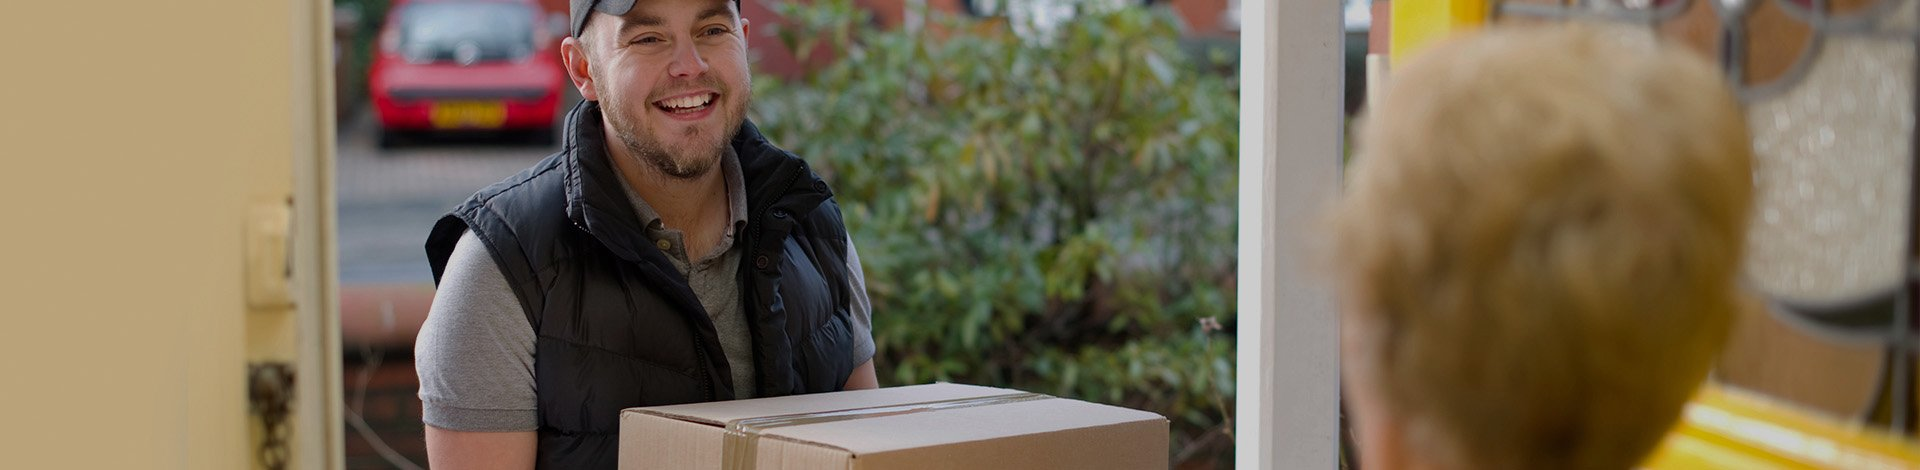 Man delivering box to house